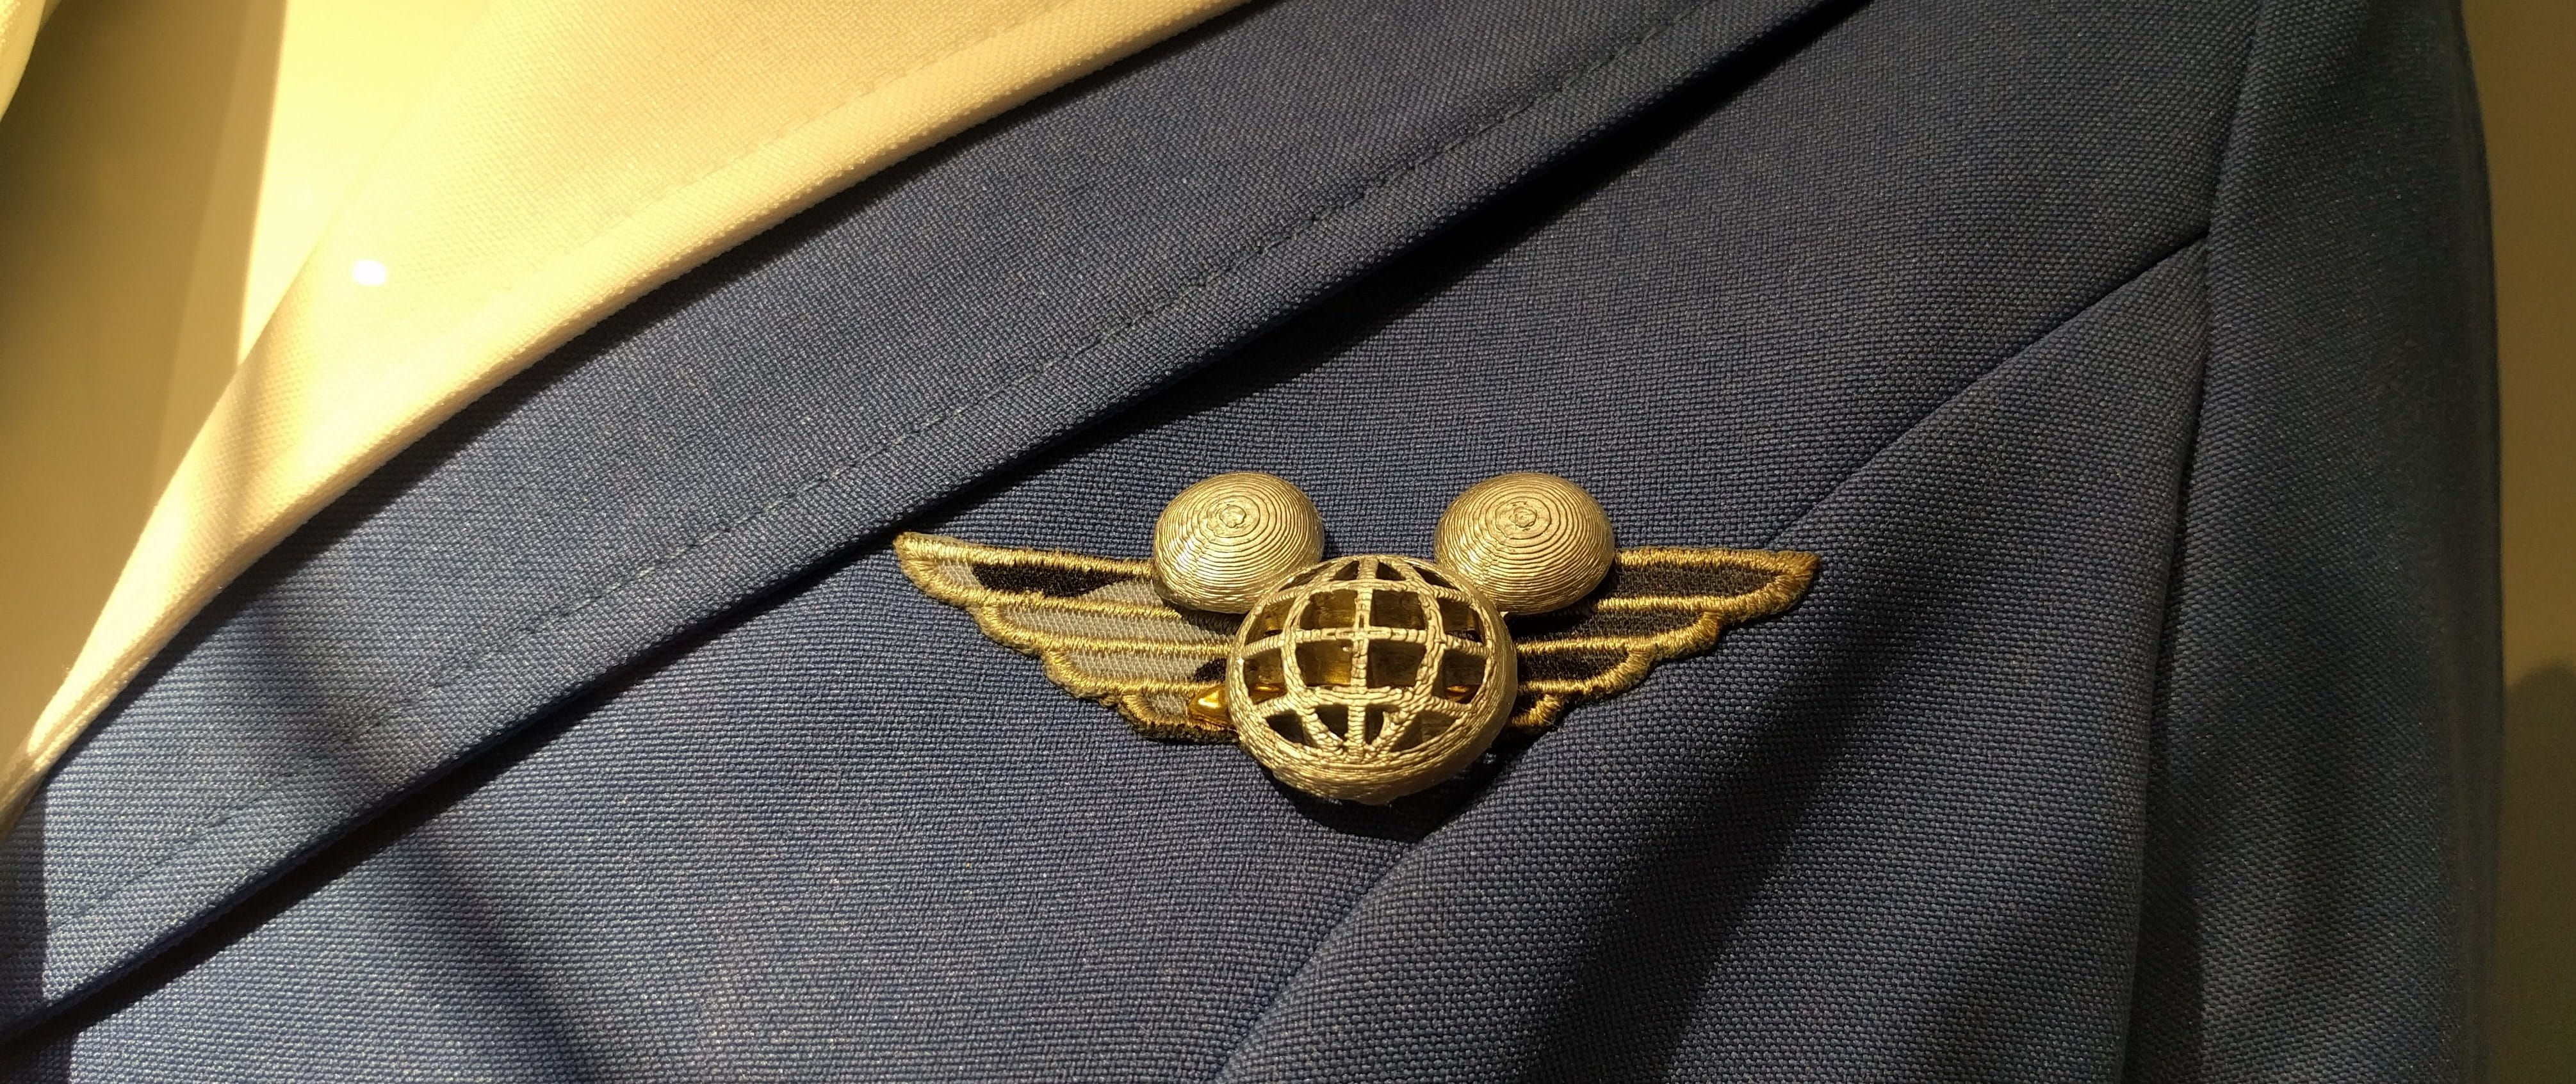 Uniform of Stewardess with Mickey Ears - Disney Round the World